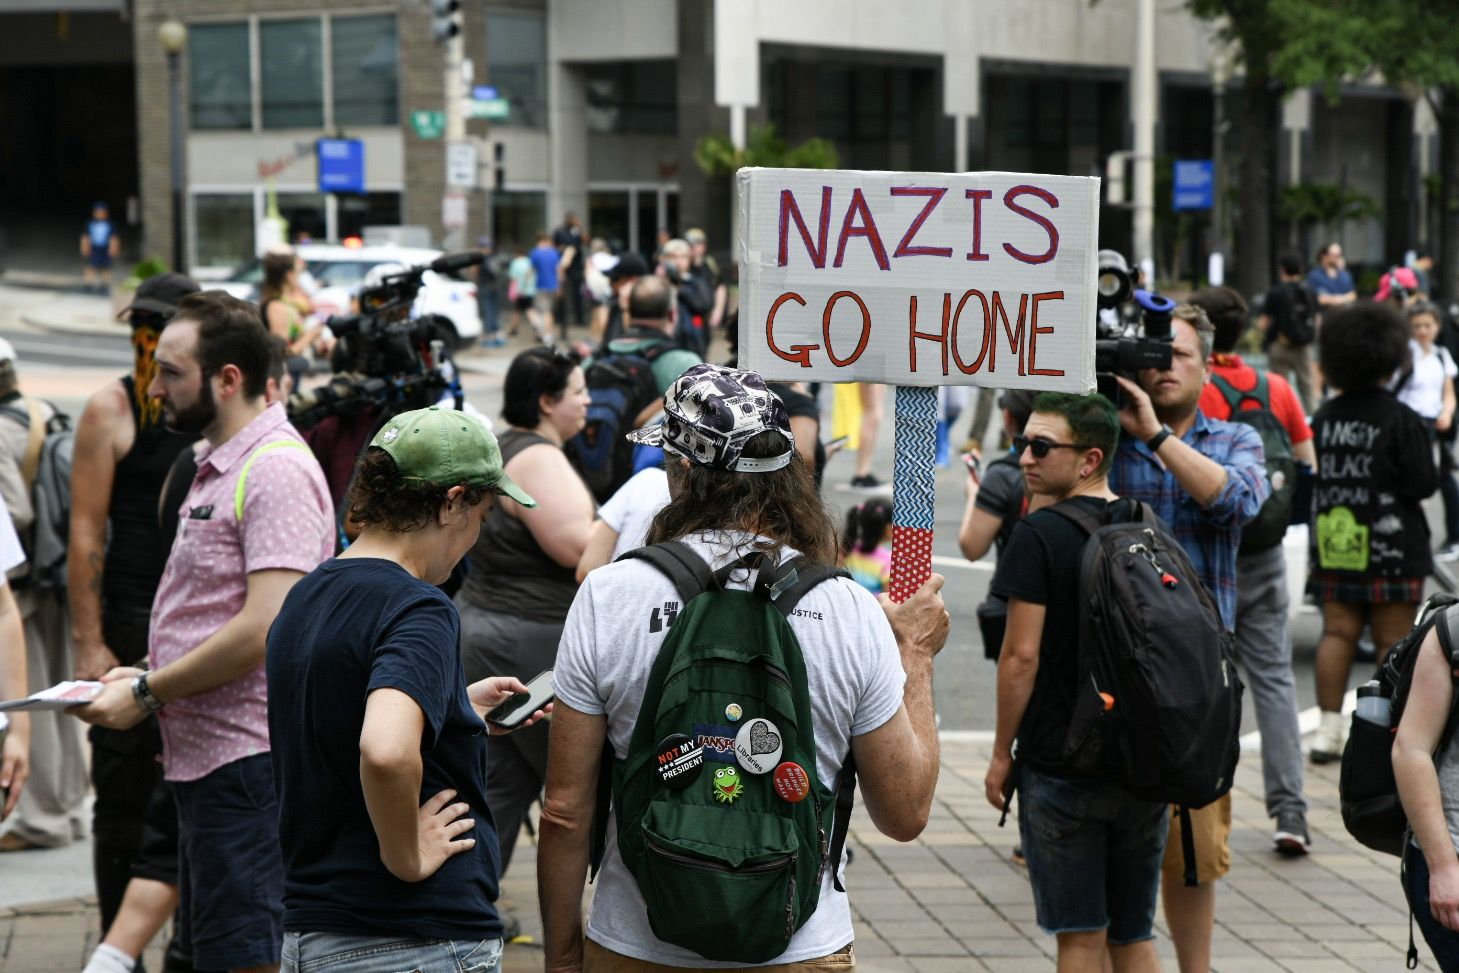 A protester opposing the far-right holds a sign against white supremacy in a counter-protest to a July 6, 2019 rally by far-right figures in Washington, D.C.'s Freedom Plaza. Trump supporters and anti-fascist organizers held dueling rallies across the street from each other, leading to high tensions as D.C. and U.S. Park Police largely held the peace. (WTOP/Alejandro Alvarez)